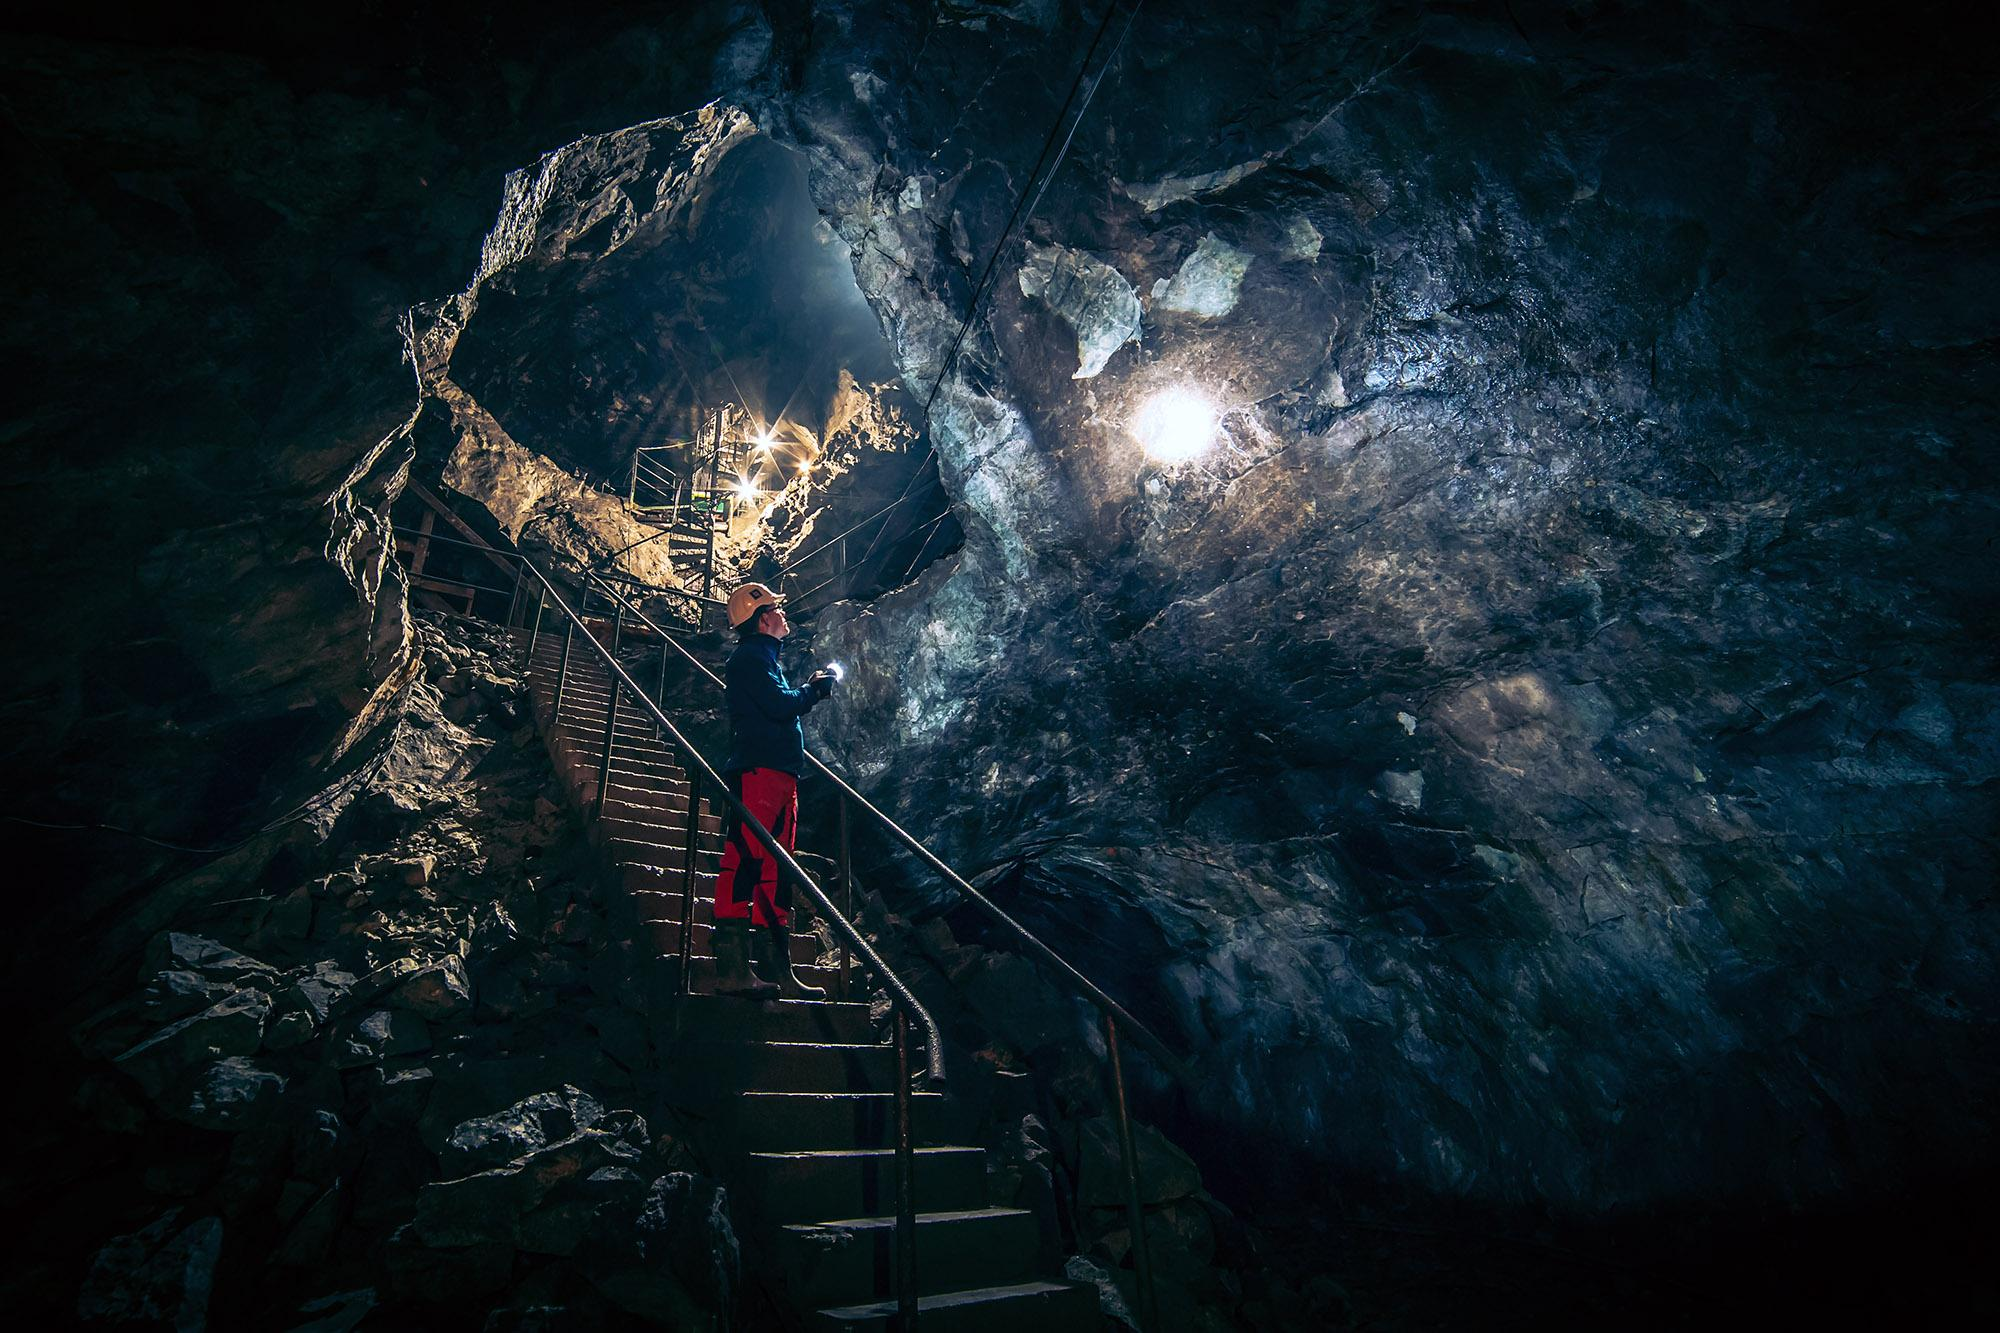 The hour-long Stigaren tour provides visitors with the 500-year history of Sala Silver Mine. – © Lars Olsson